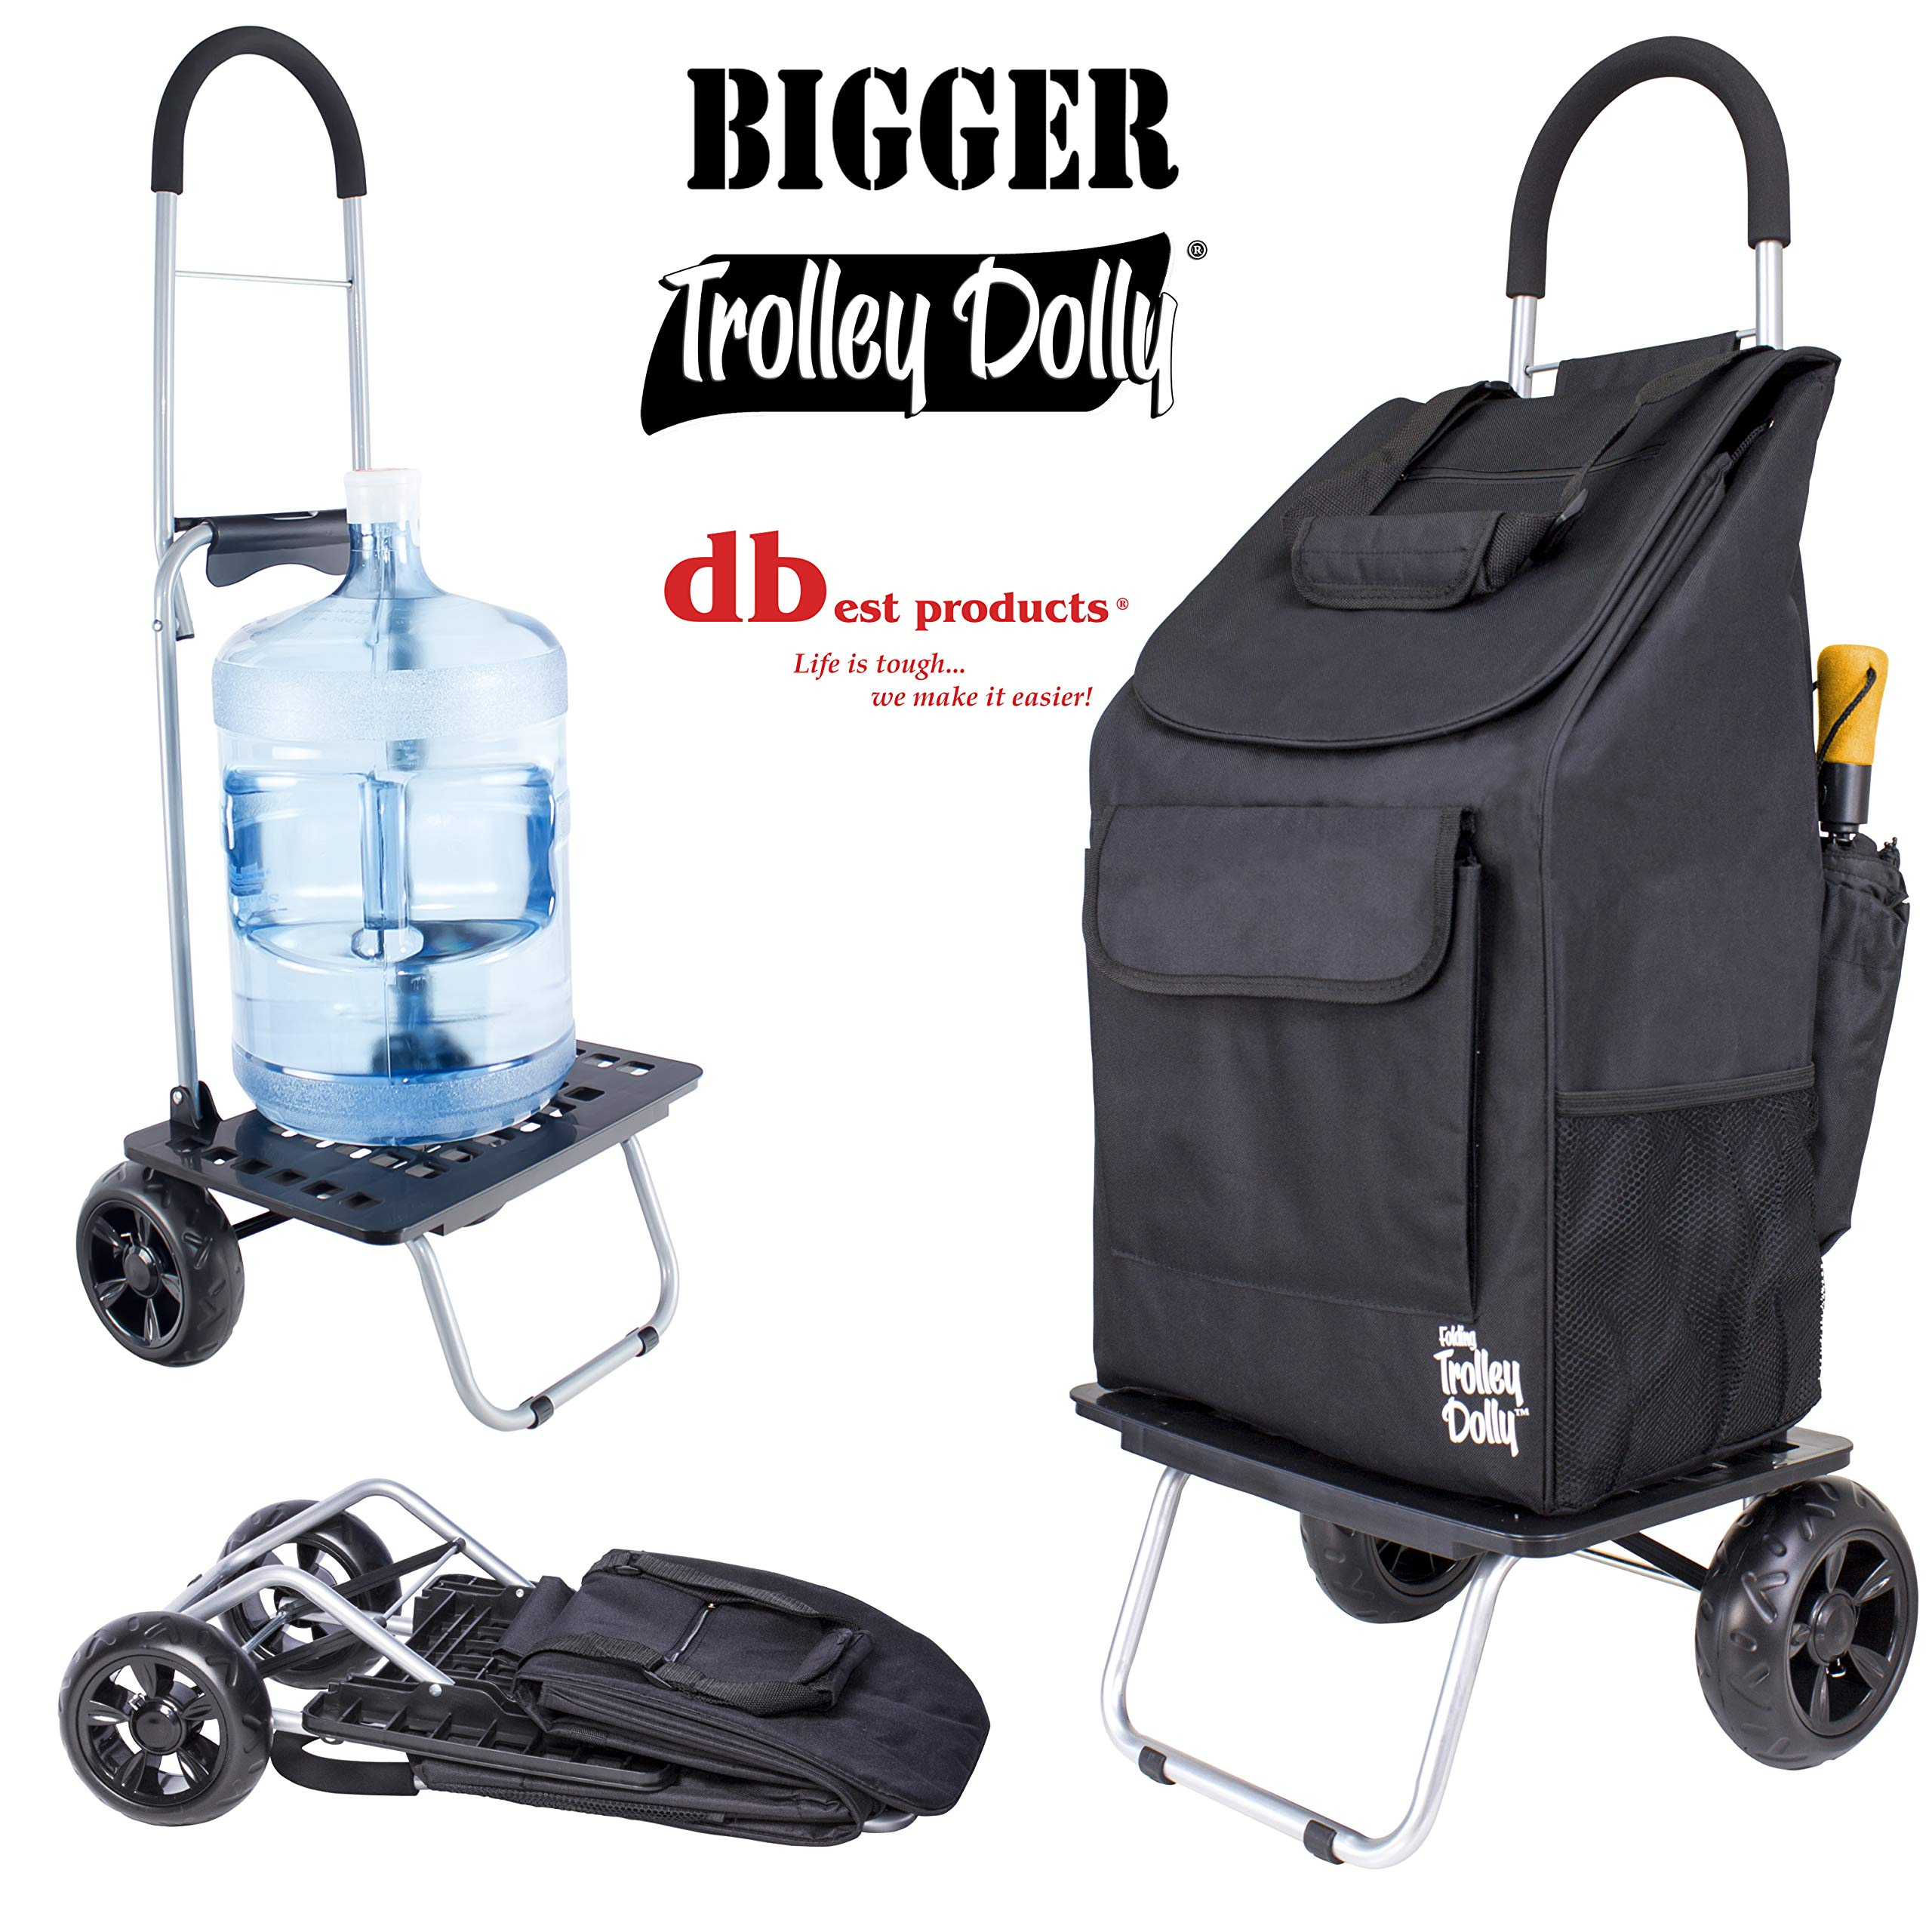 dbest products Bigger Trolley Dolly, Black Shopping Grocery Foldable Cart